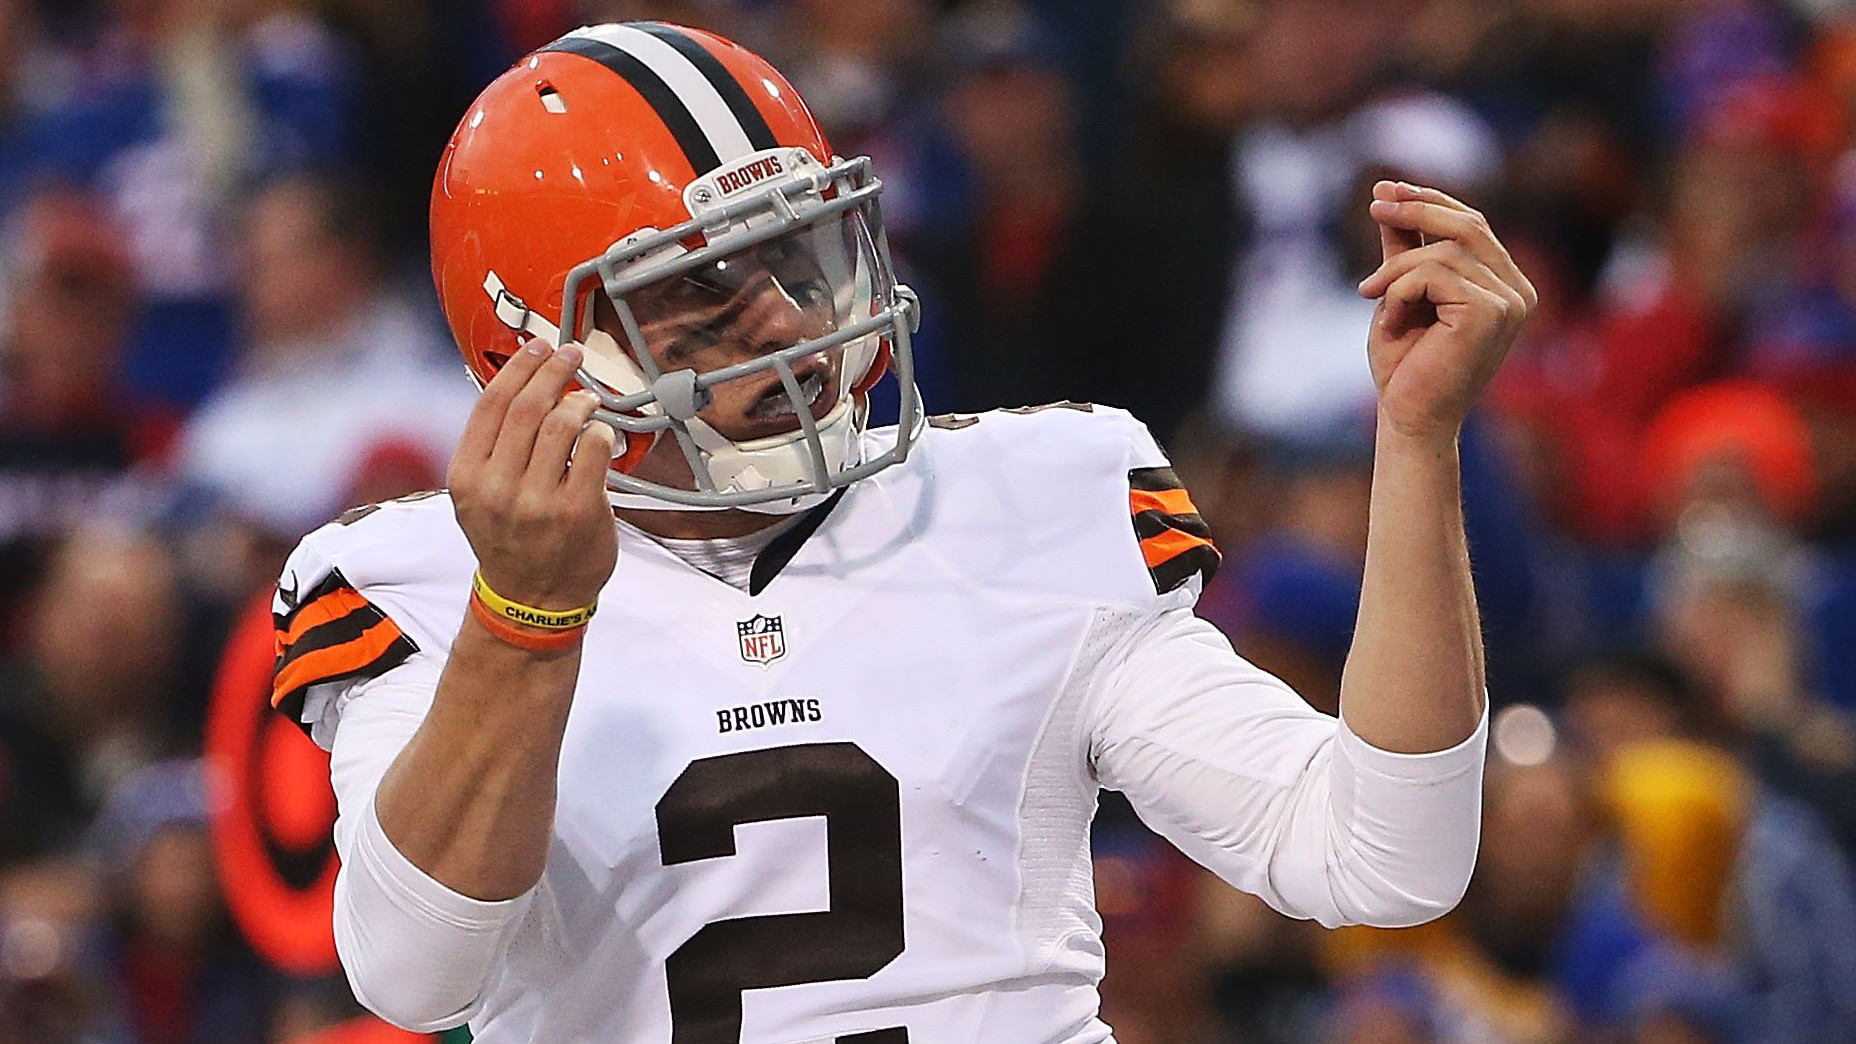 cleveland browns quarterback johnny manziel says his